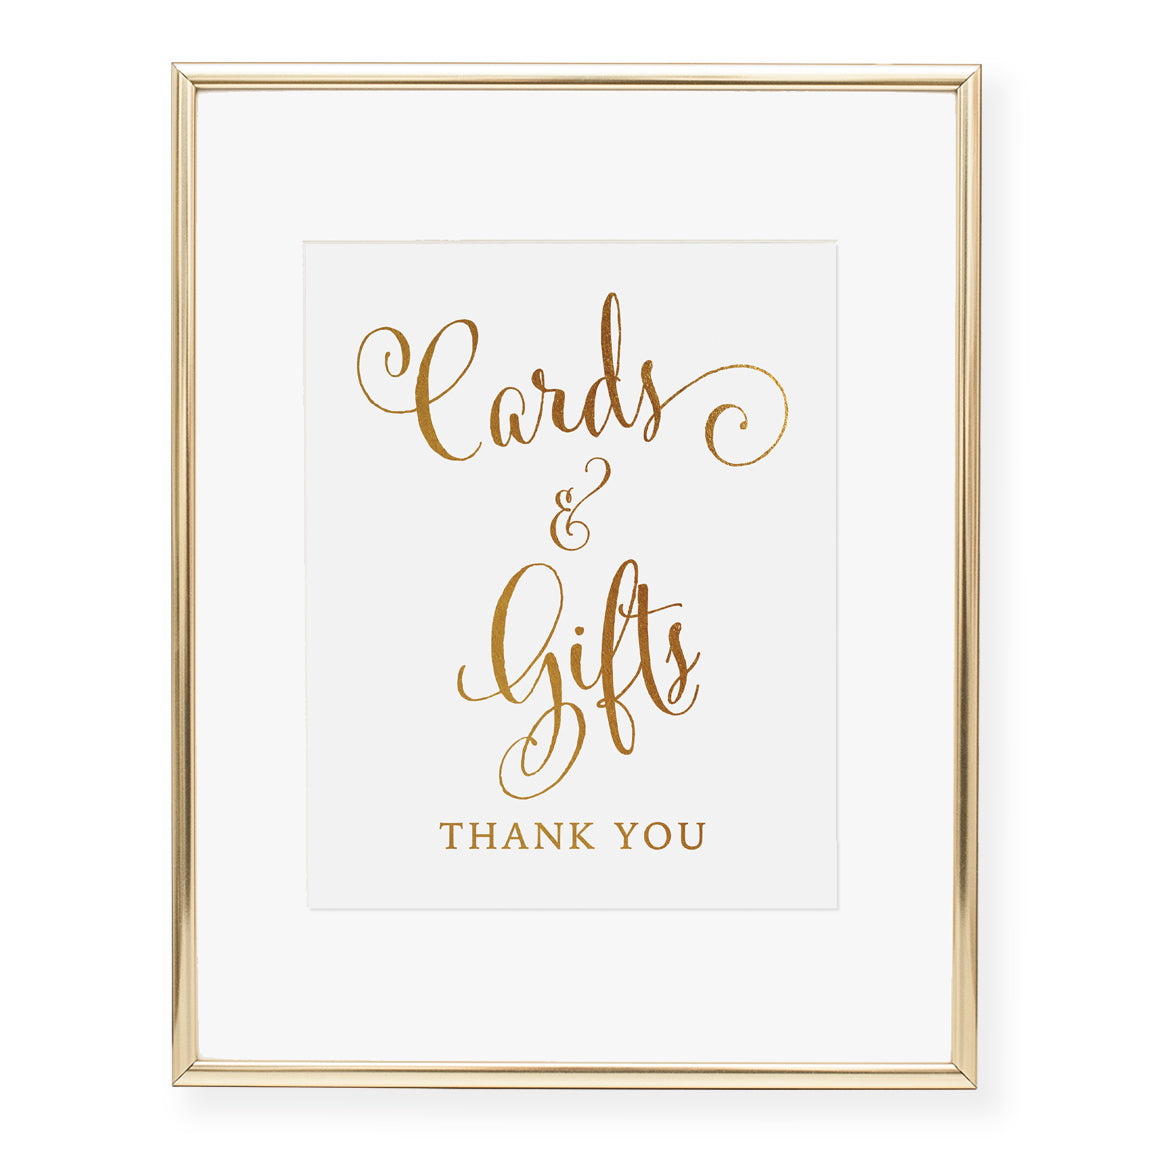 Cards & Gifts Thank You Foil Art Print